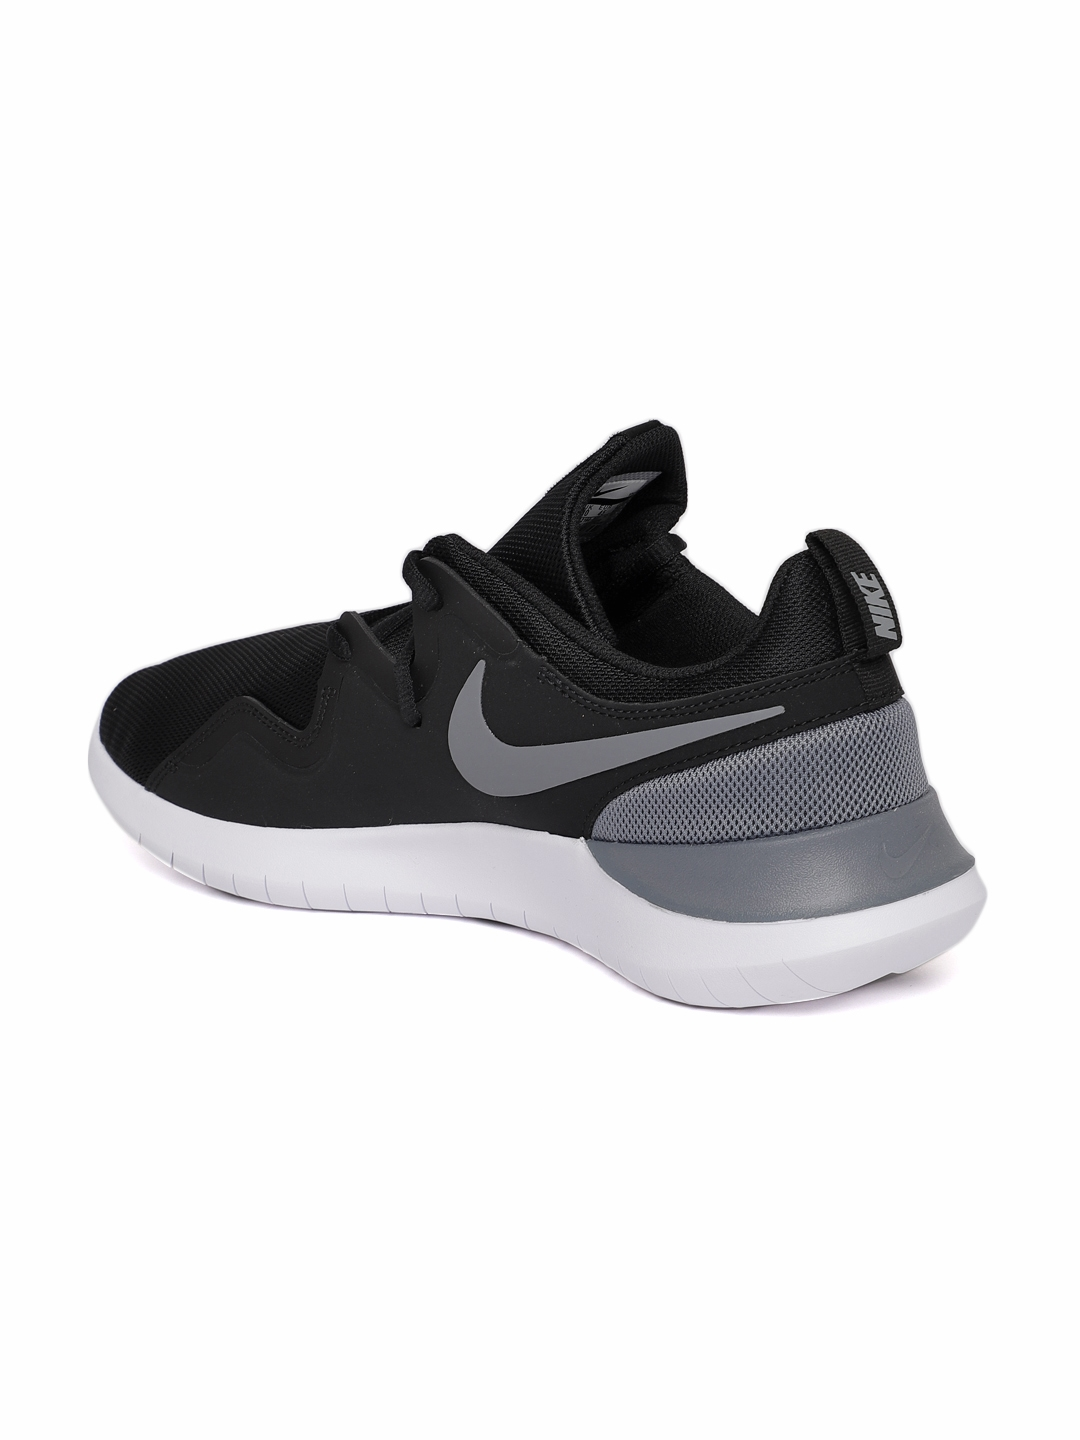 new arrival 6fc1e 5ccaa Nike Men Black Tessen Sneakers